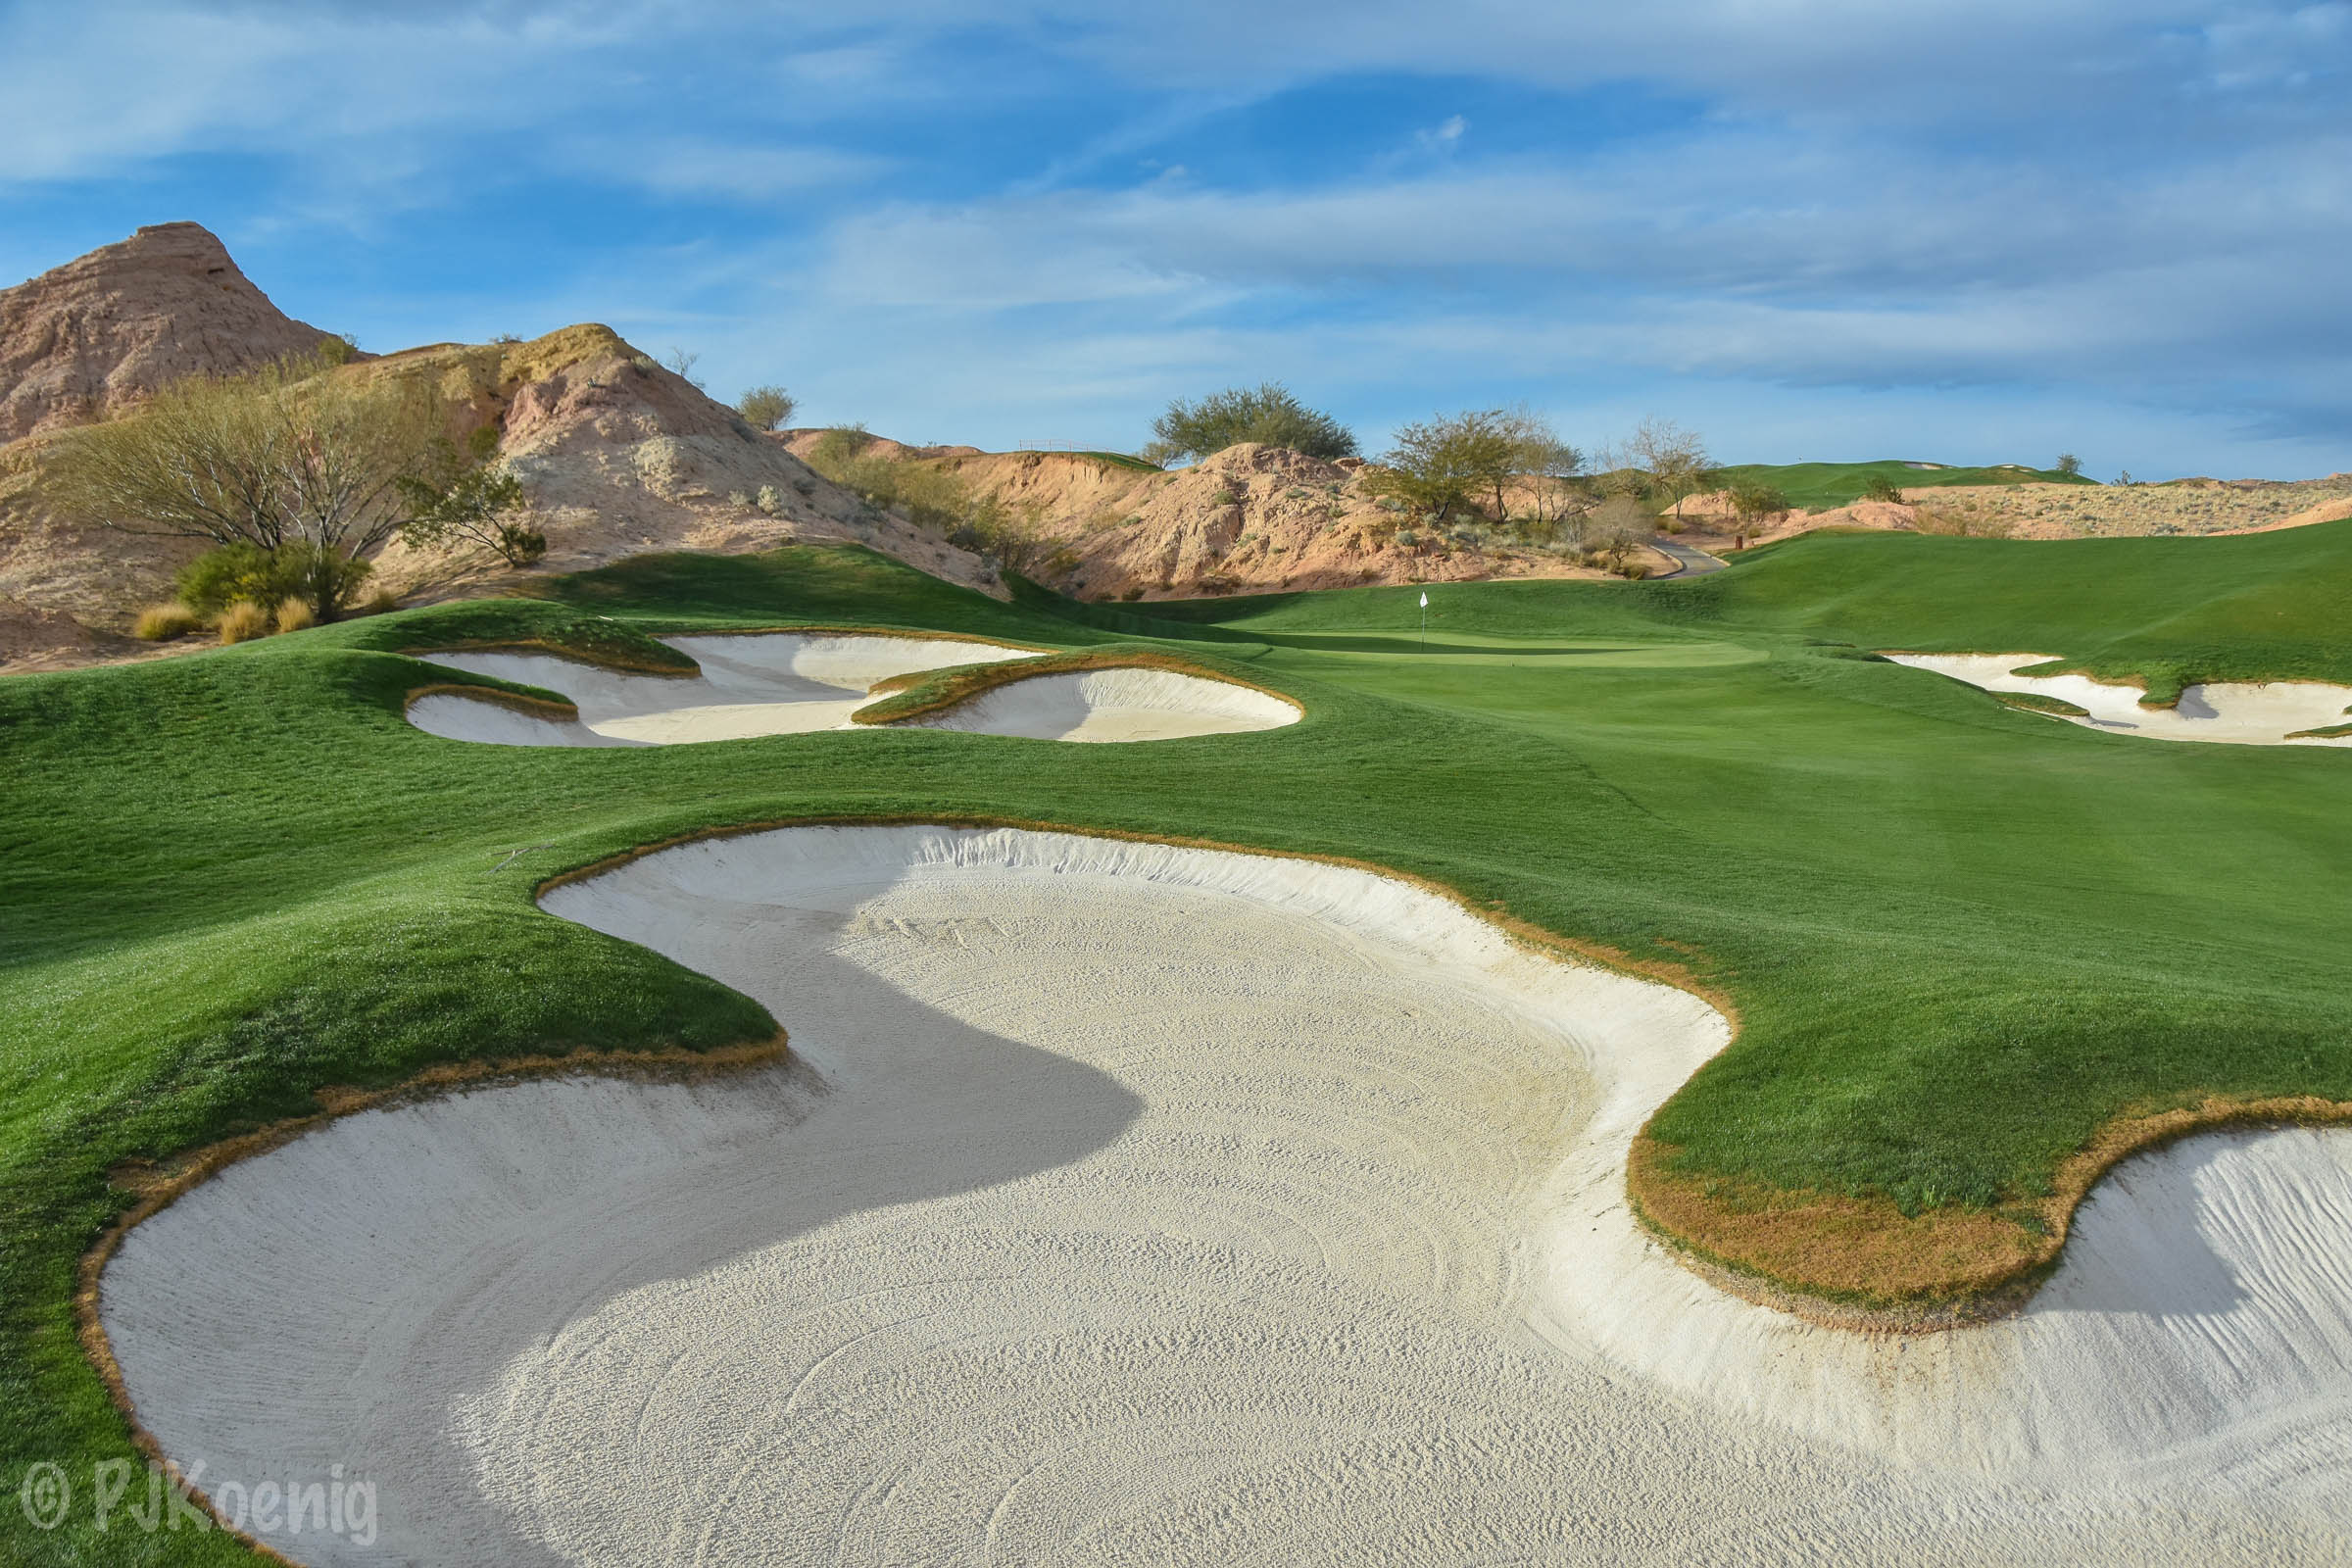 Along with  Tobacco Road ,  Wolf Creek  is easily one of the most fun golf courses in America that you can play.